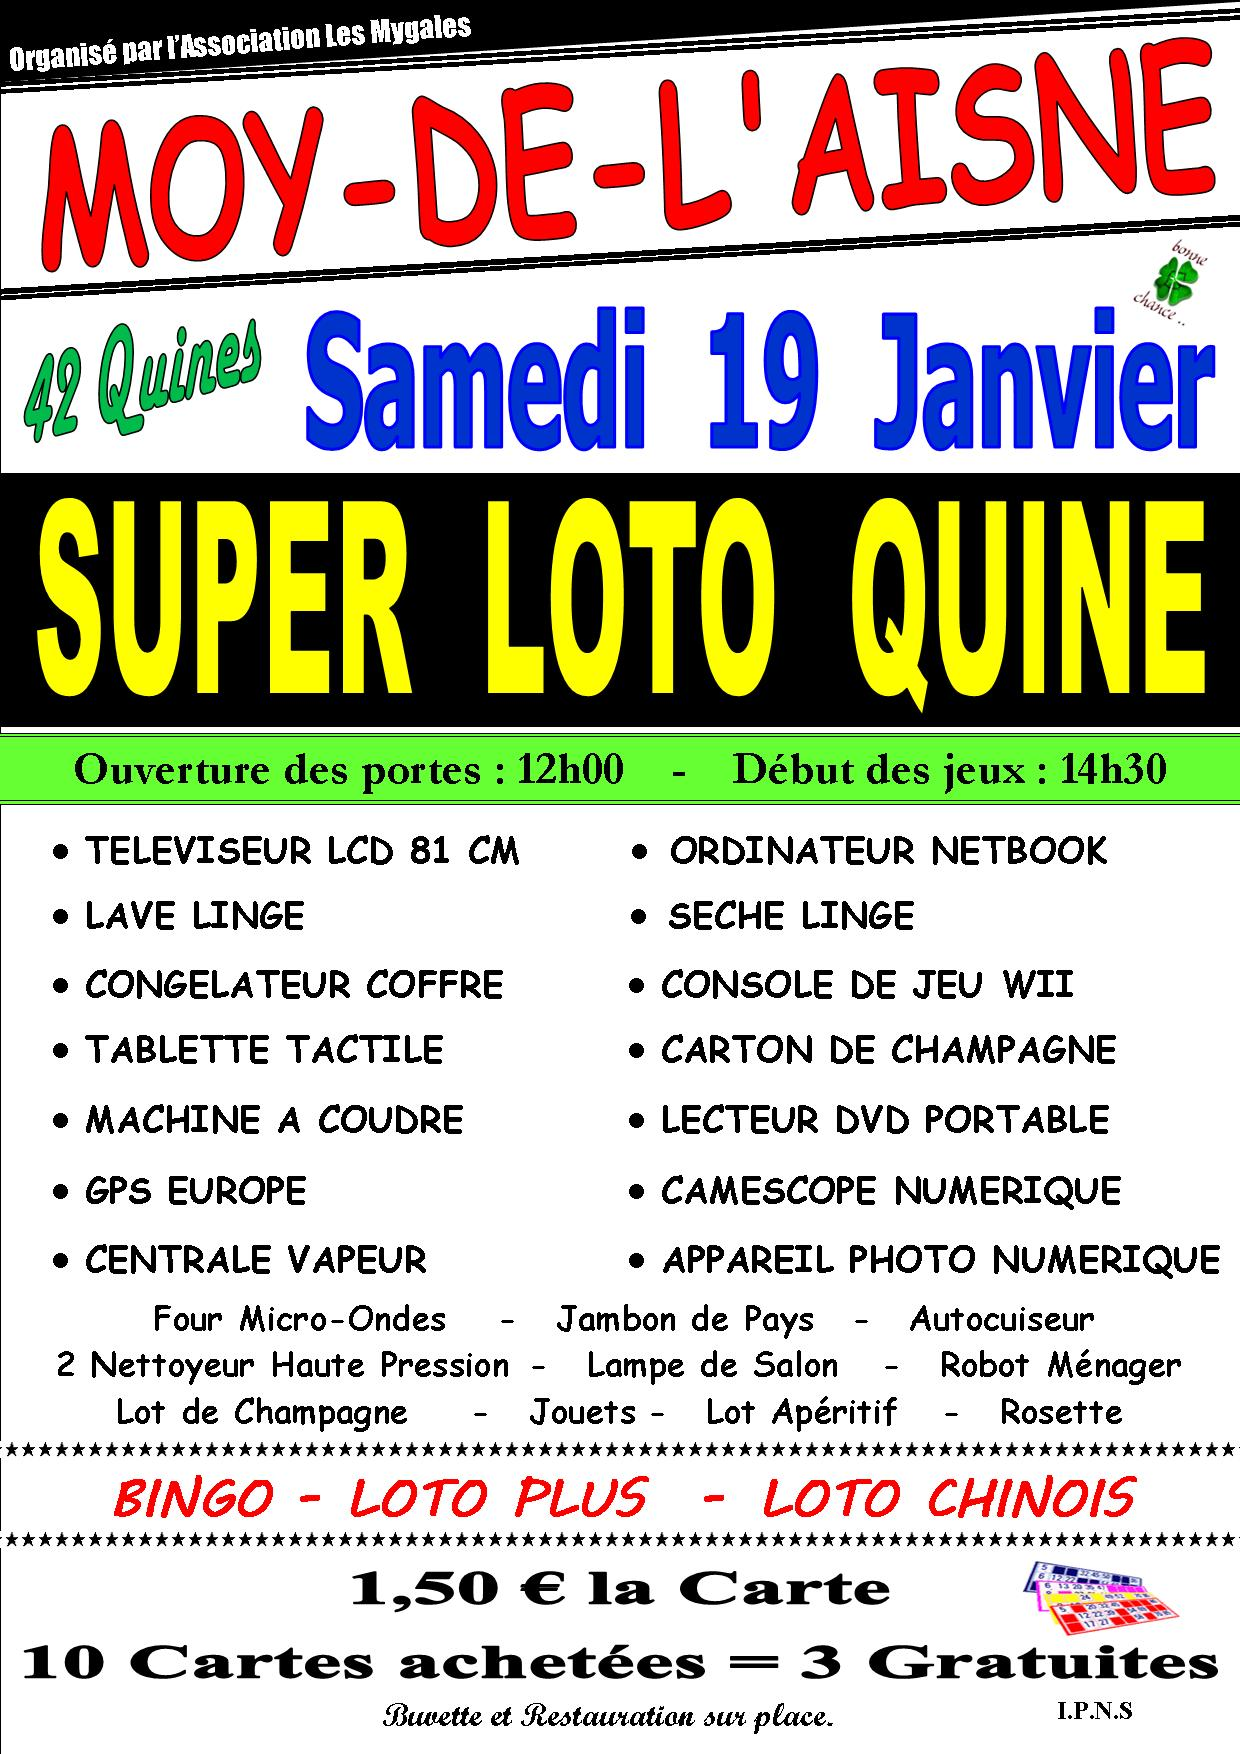 super loto quine moy de l 39 aisne samedi 19 janvier 2013. Black Bedroom Furniture Sets. Home Design Ideas